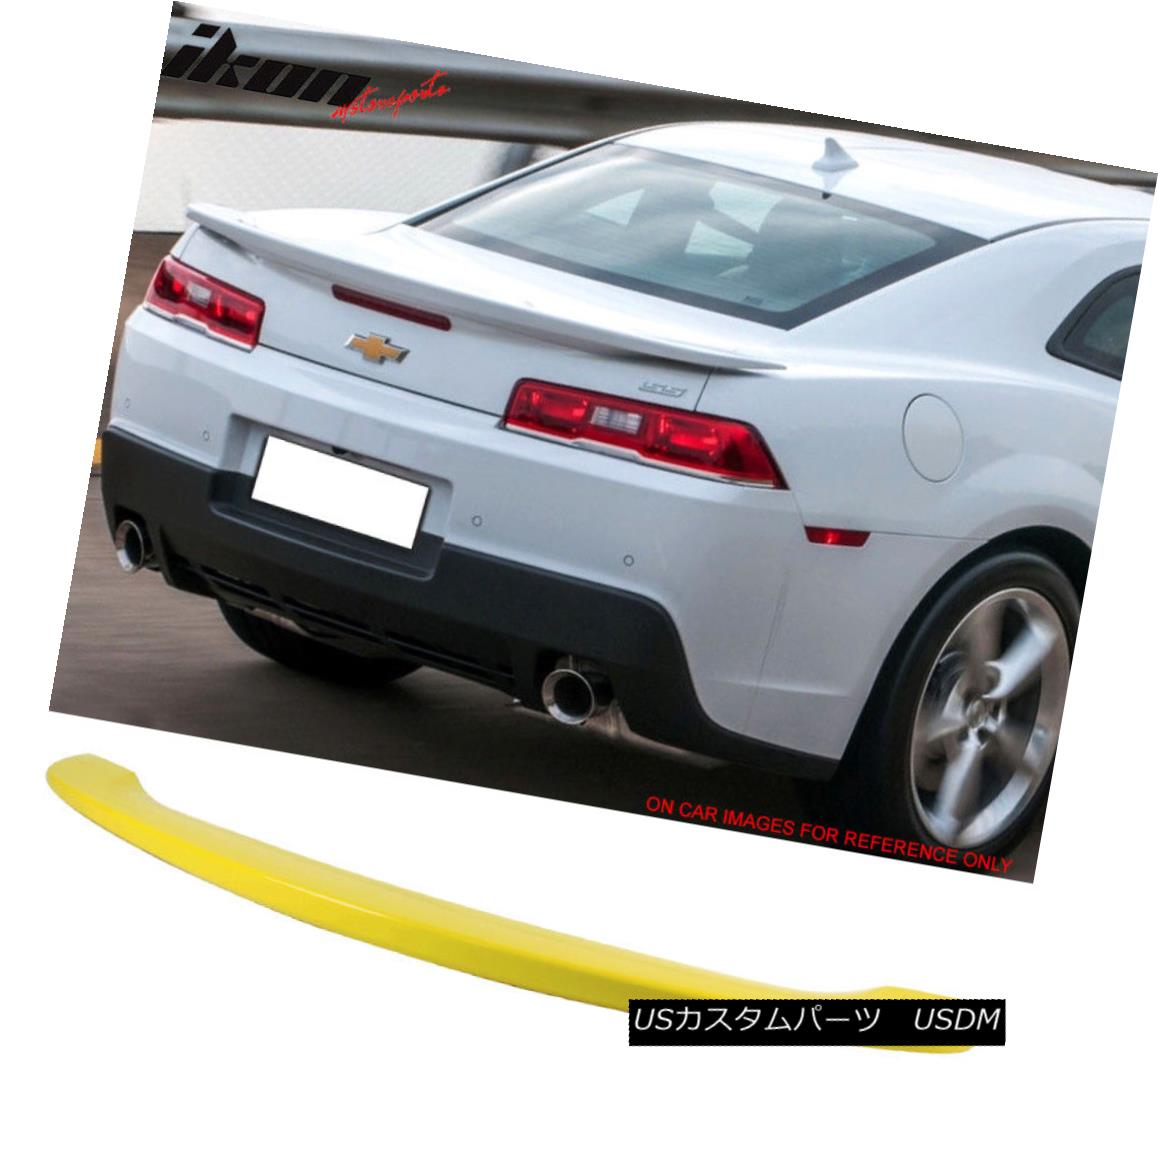 エアロパーツ 14-15 Chevy Camaro 2Dr OE Factory Trunk Spoiler Painted #WA131X Lemon Peel 14-15 Chevy Camaro 2Dr OE工場のトランク・スポイラー・ペイント#WA131X Lemon Peel